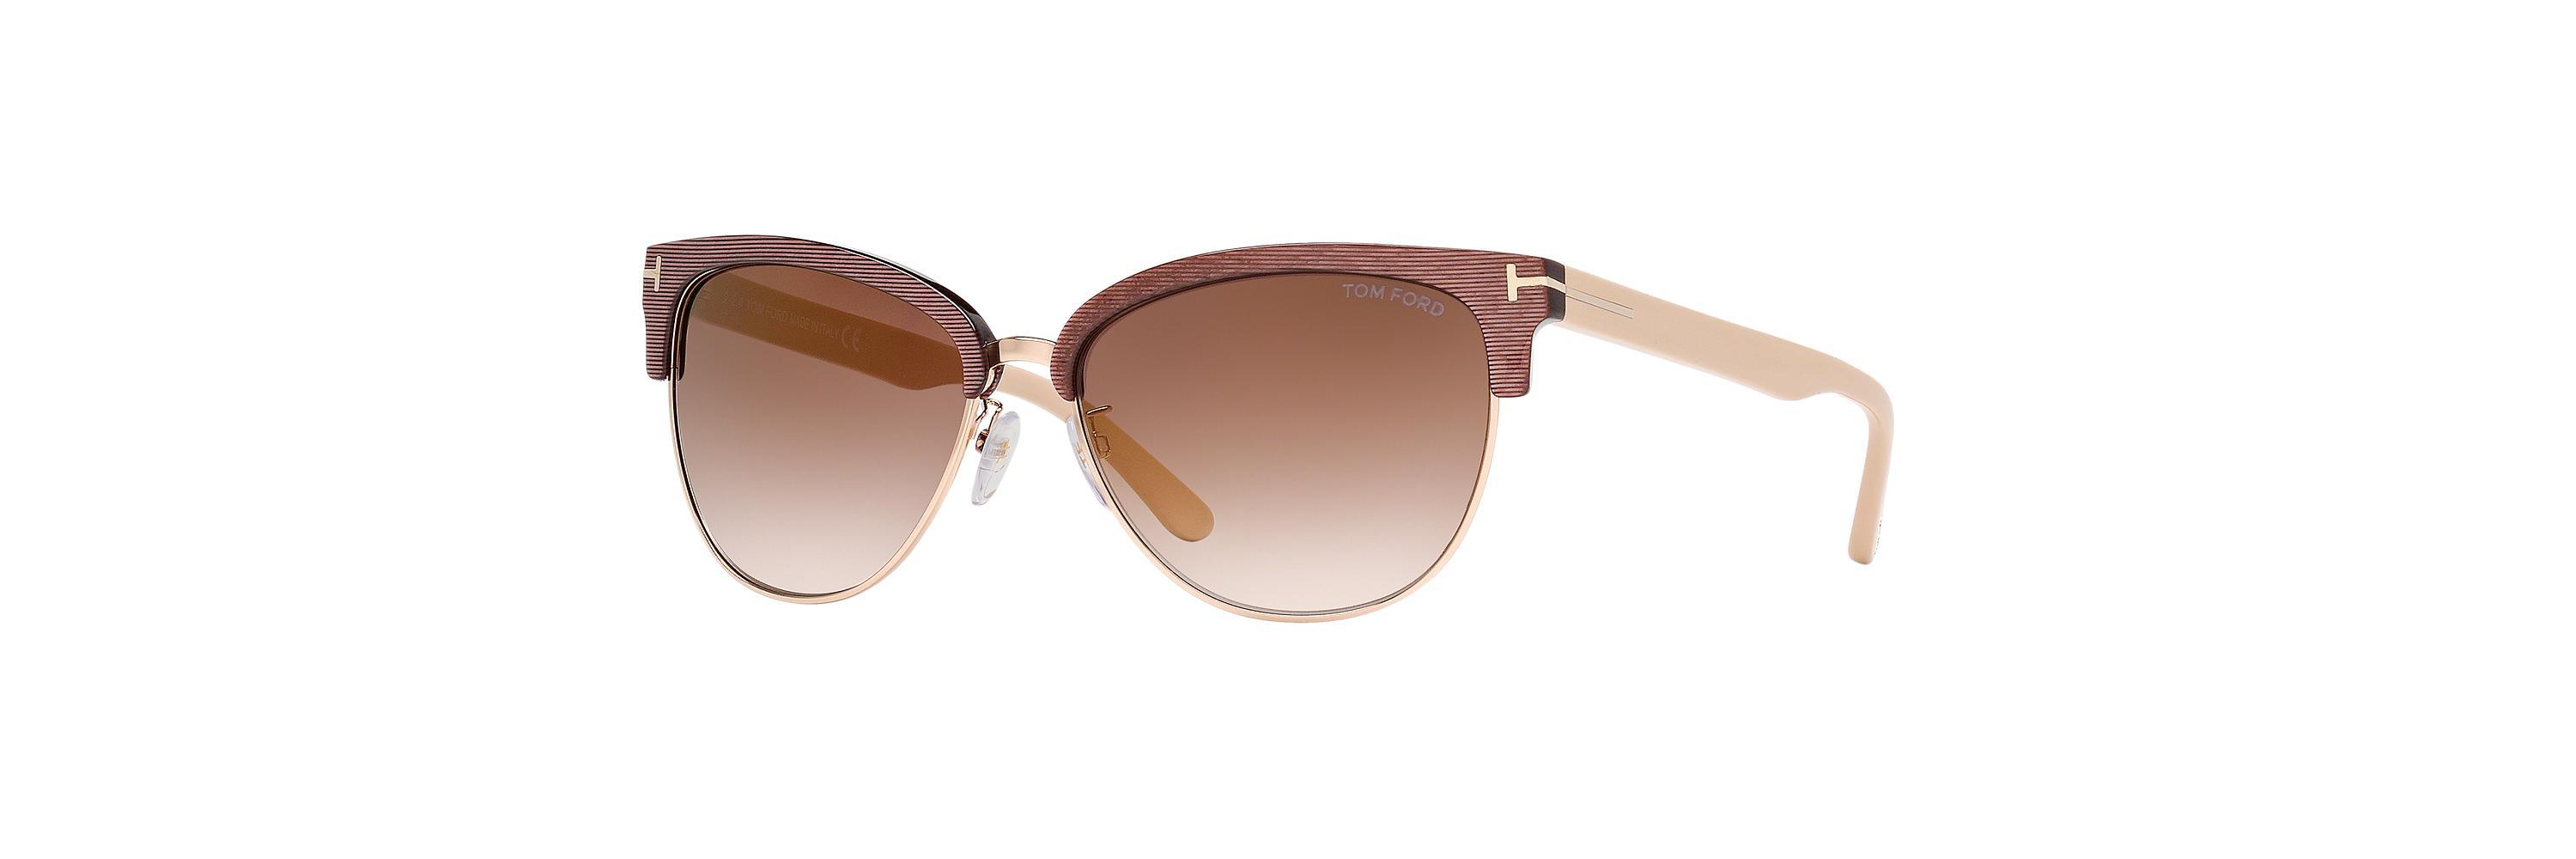 54d0abb4ddab0 Lyst - Tom Ford Ft0368 Fany in Brown